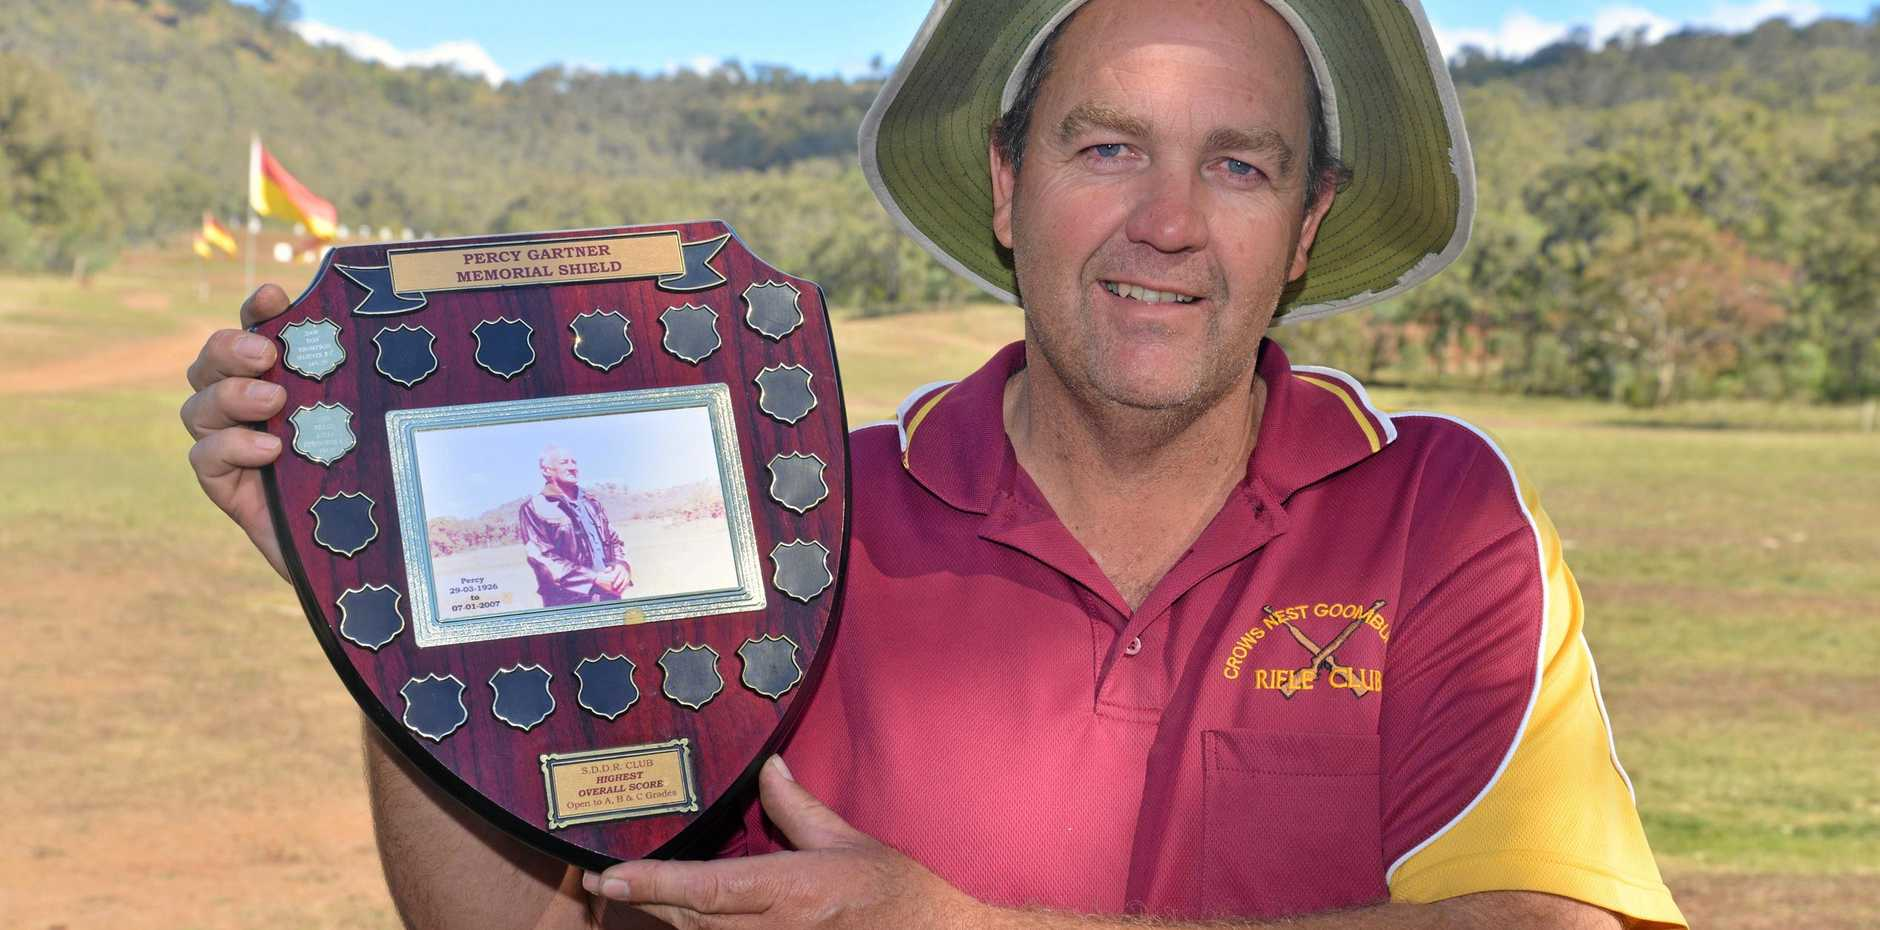 Ashley Bidgood with the Percy Gartner Memorial Shield for his win at Darling Downs district level at Risdon Range.